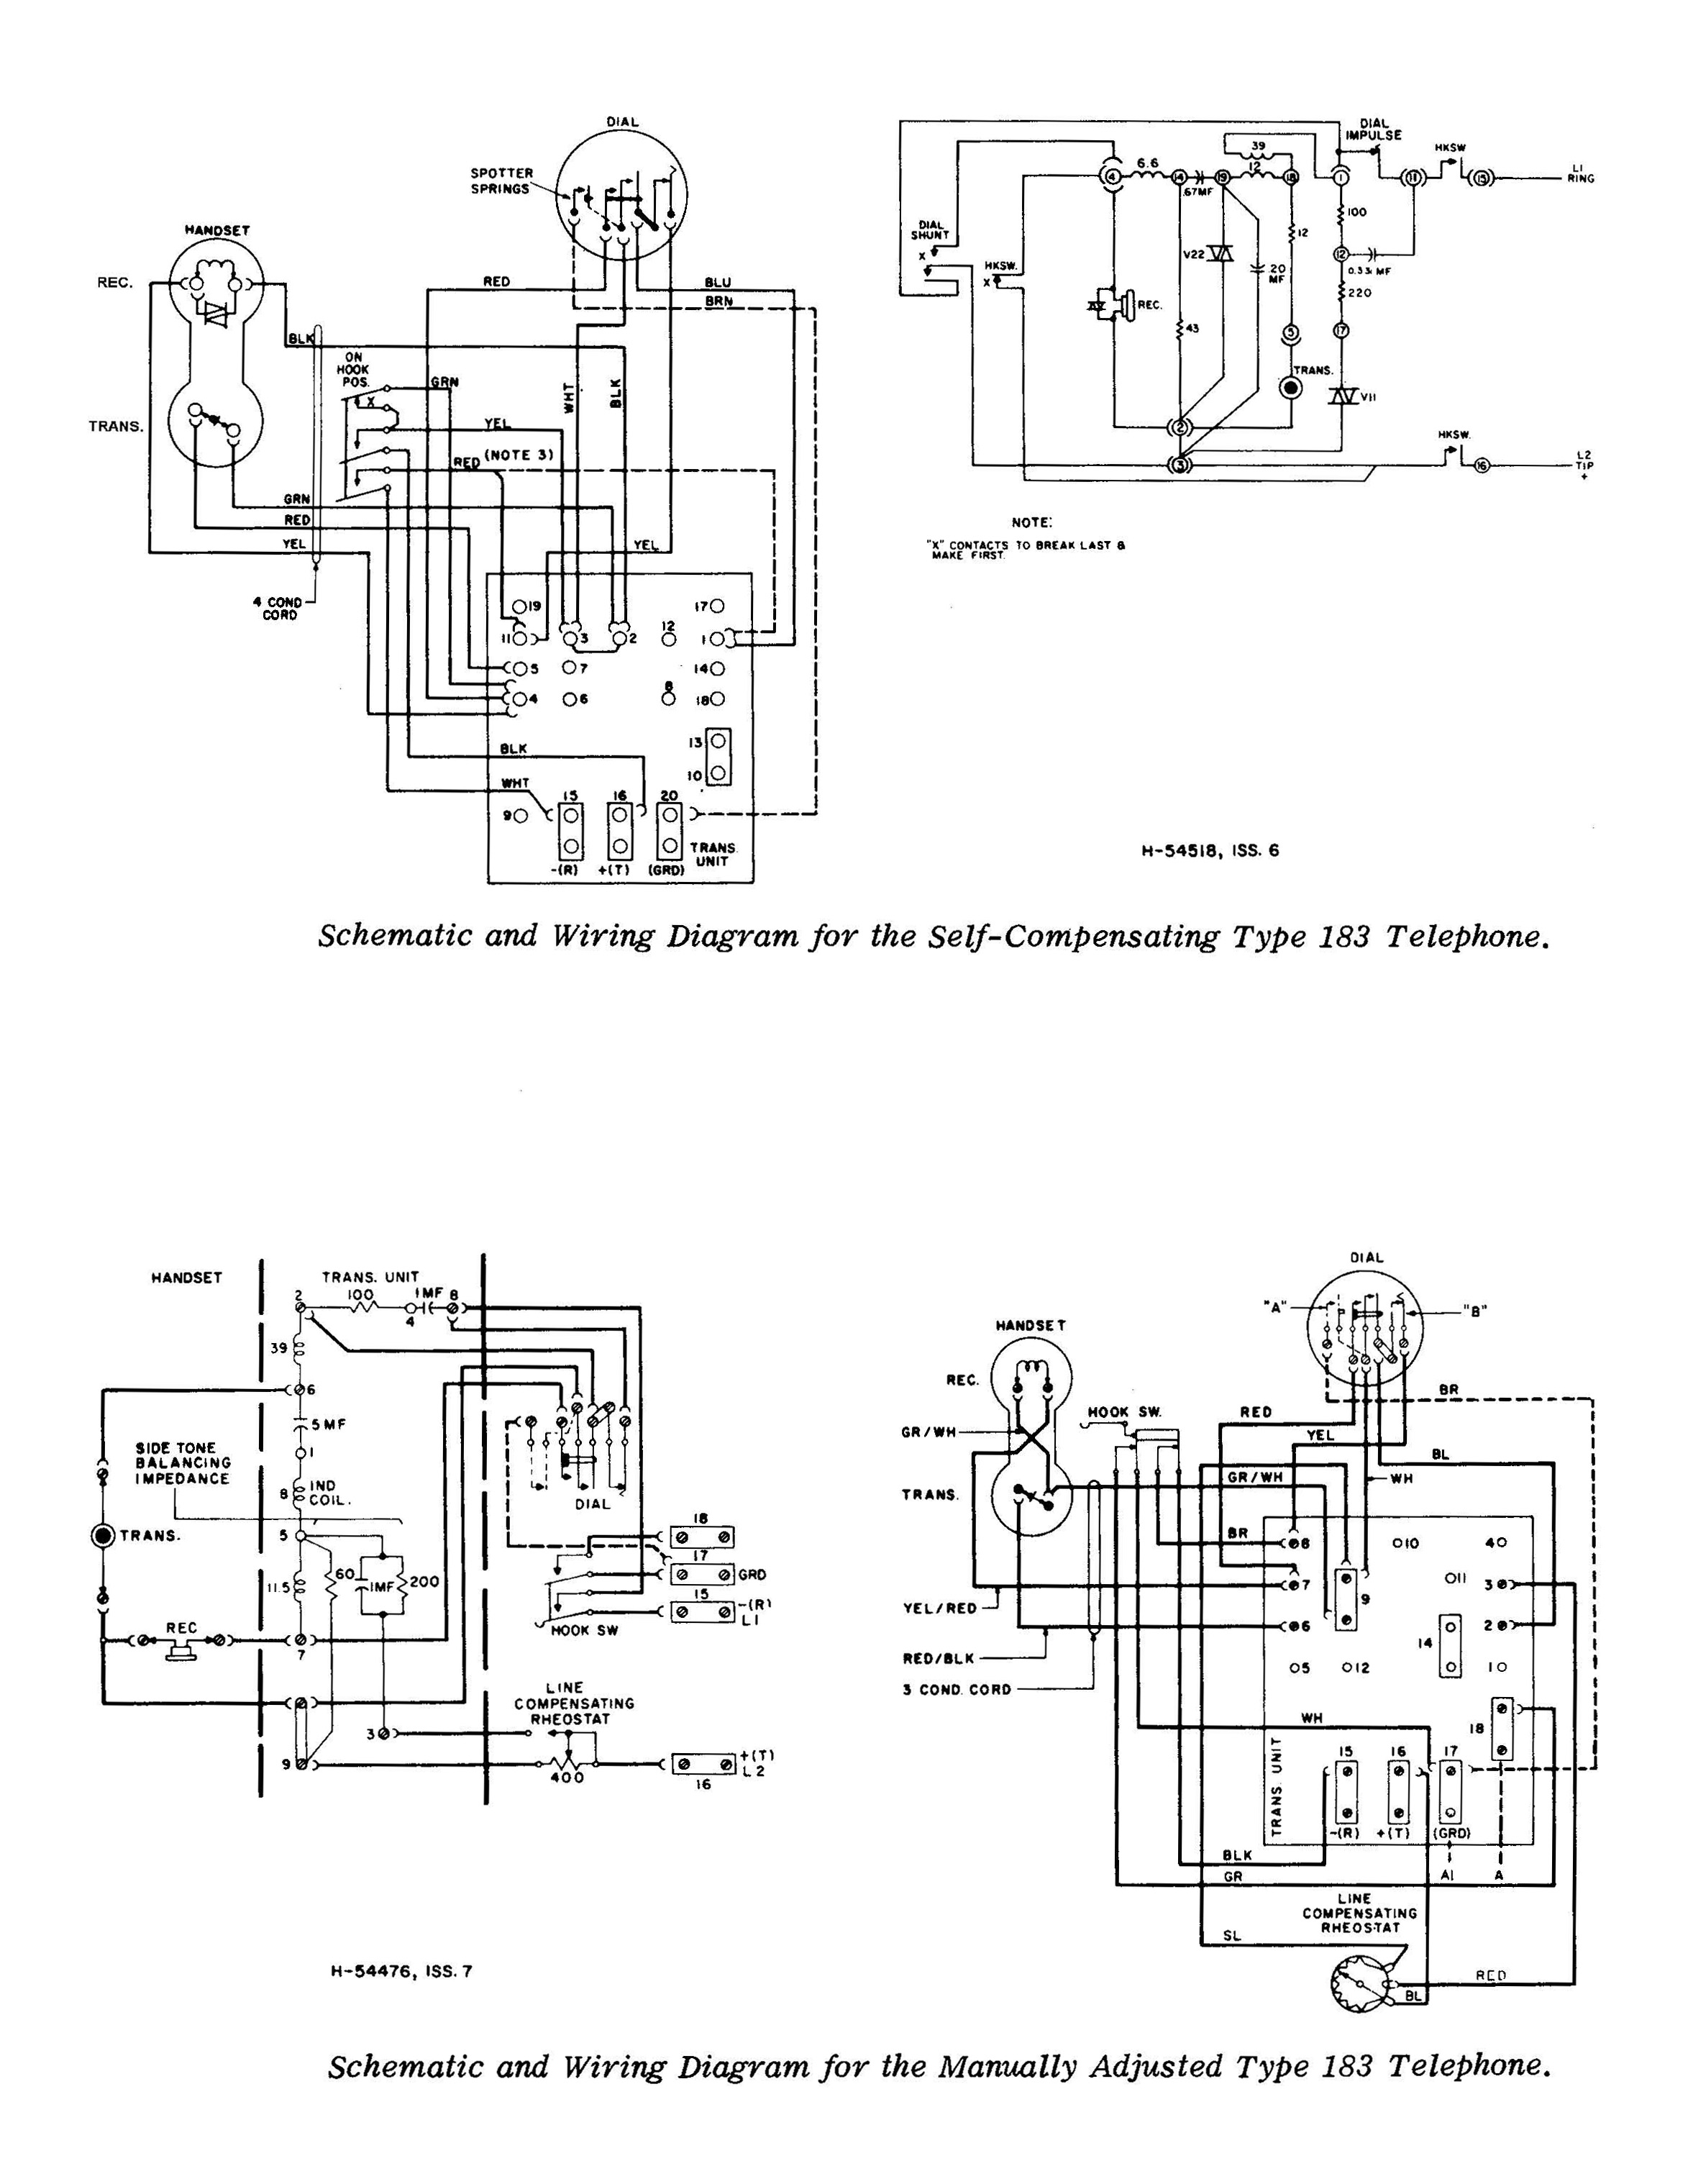 home phone wiring diagram australia with Telephone Wall Socket Wiring Diagram Australia on Telephone Wall Socket Wiring Diagram Australia additionally Telephone Wall Socket Wiring Diagram Australia in addition Wiring Diagram Cat5e Jack additionally 3 Prong Extension Cord Wiring Diagram further Home Lighting Wiring Diagrams.